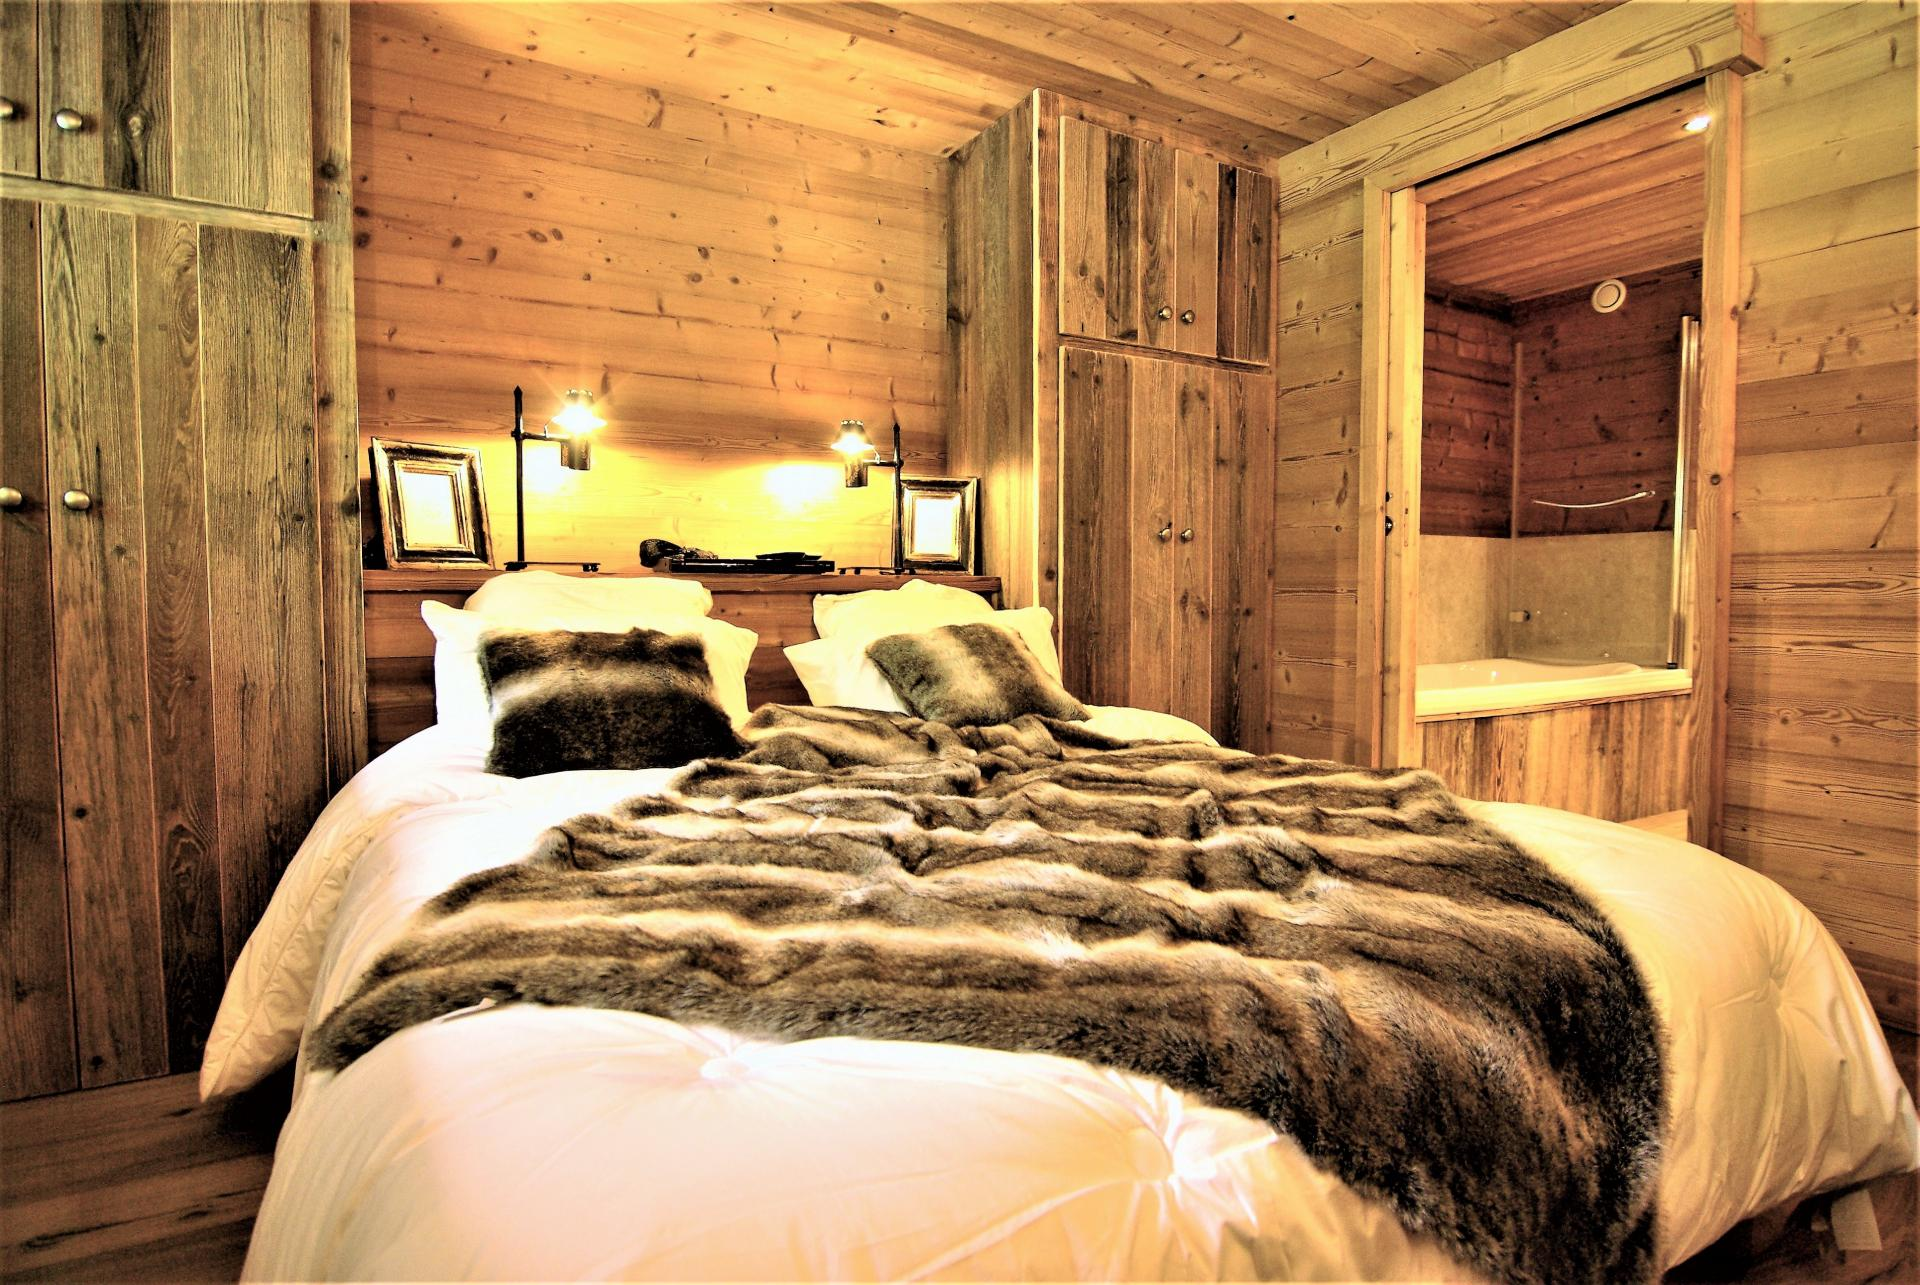 AN ENSUITE BEDROOM IN A HOLIDAY CHALET IN THE ALPS